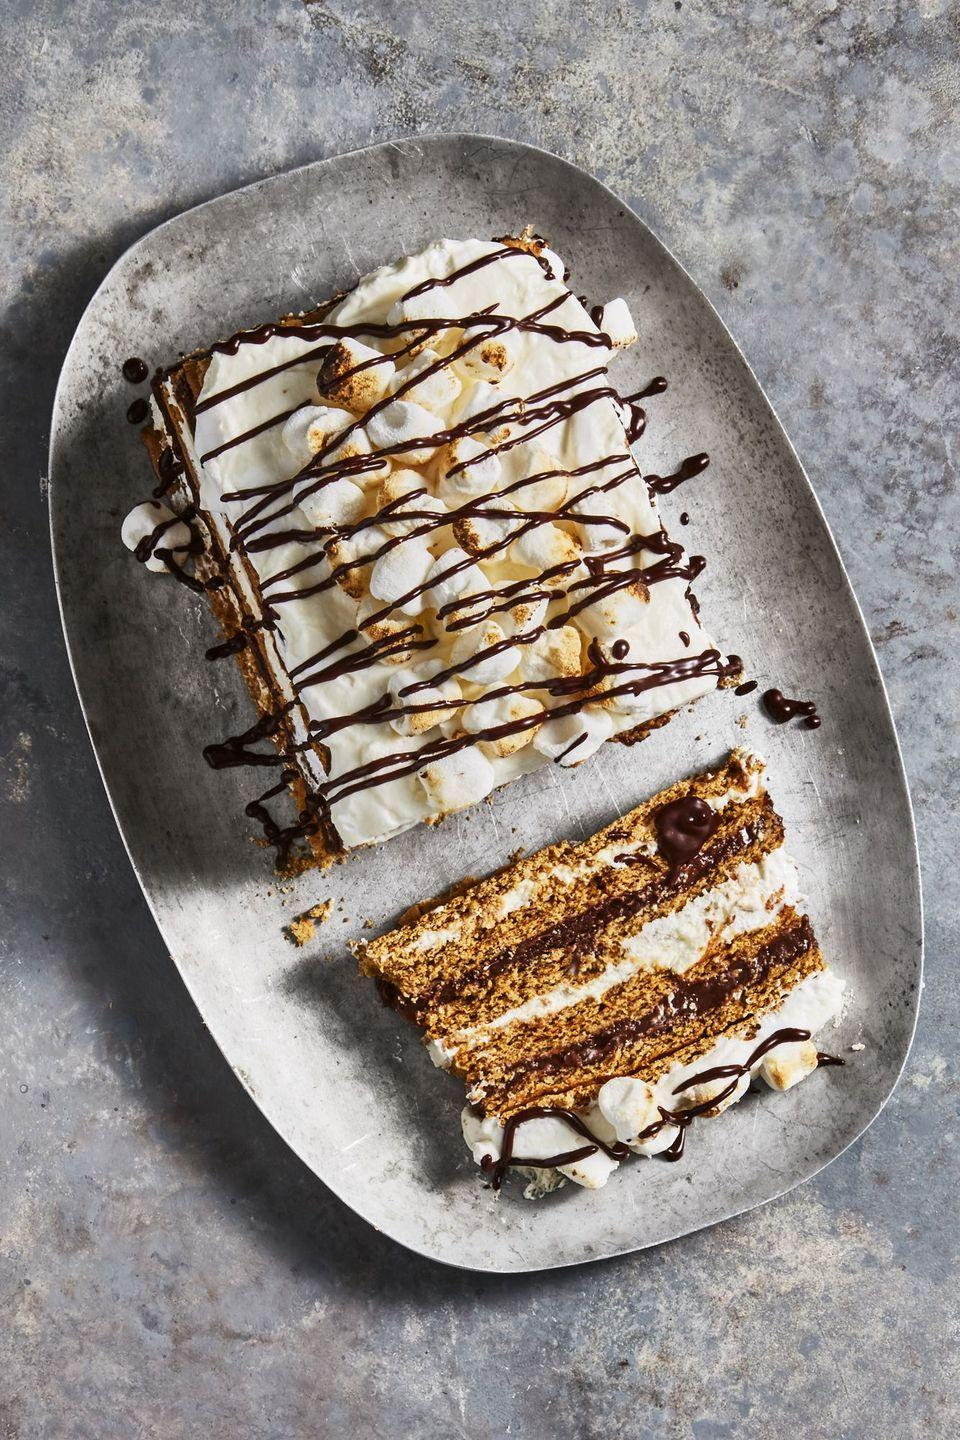 """<p>You won't even have to ask dad to fire up the grill to whip up this sticky and sweet no-bake cake.</p><p><em><a href=""""https://www.goodhousekeeping.com/food-recipes/dessert/a45720/smores-icebox-cake-recipe/"""" rel=""""nofollow noopener"""" target=""""_blank"""" data-ylk=""""slk:Get the recipe for S'mores Icebox Cake »"""" class=""""link rapid-noclick-resp"""">Get the recipe for S'mores Icebox Cake »</a></em></p>"""